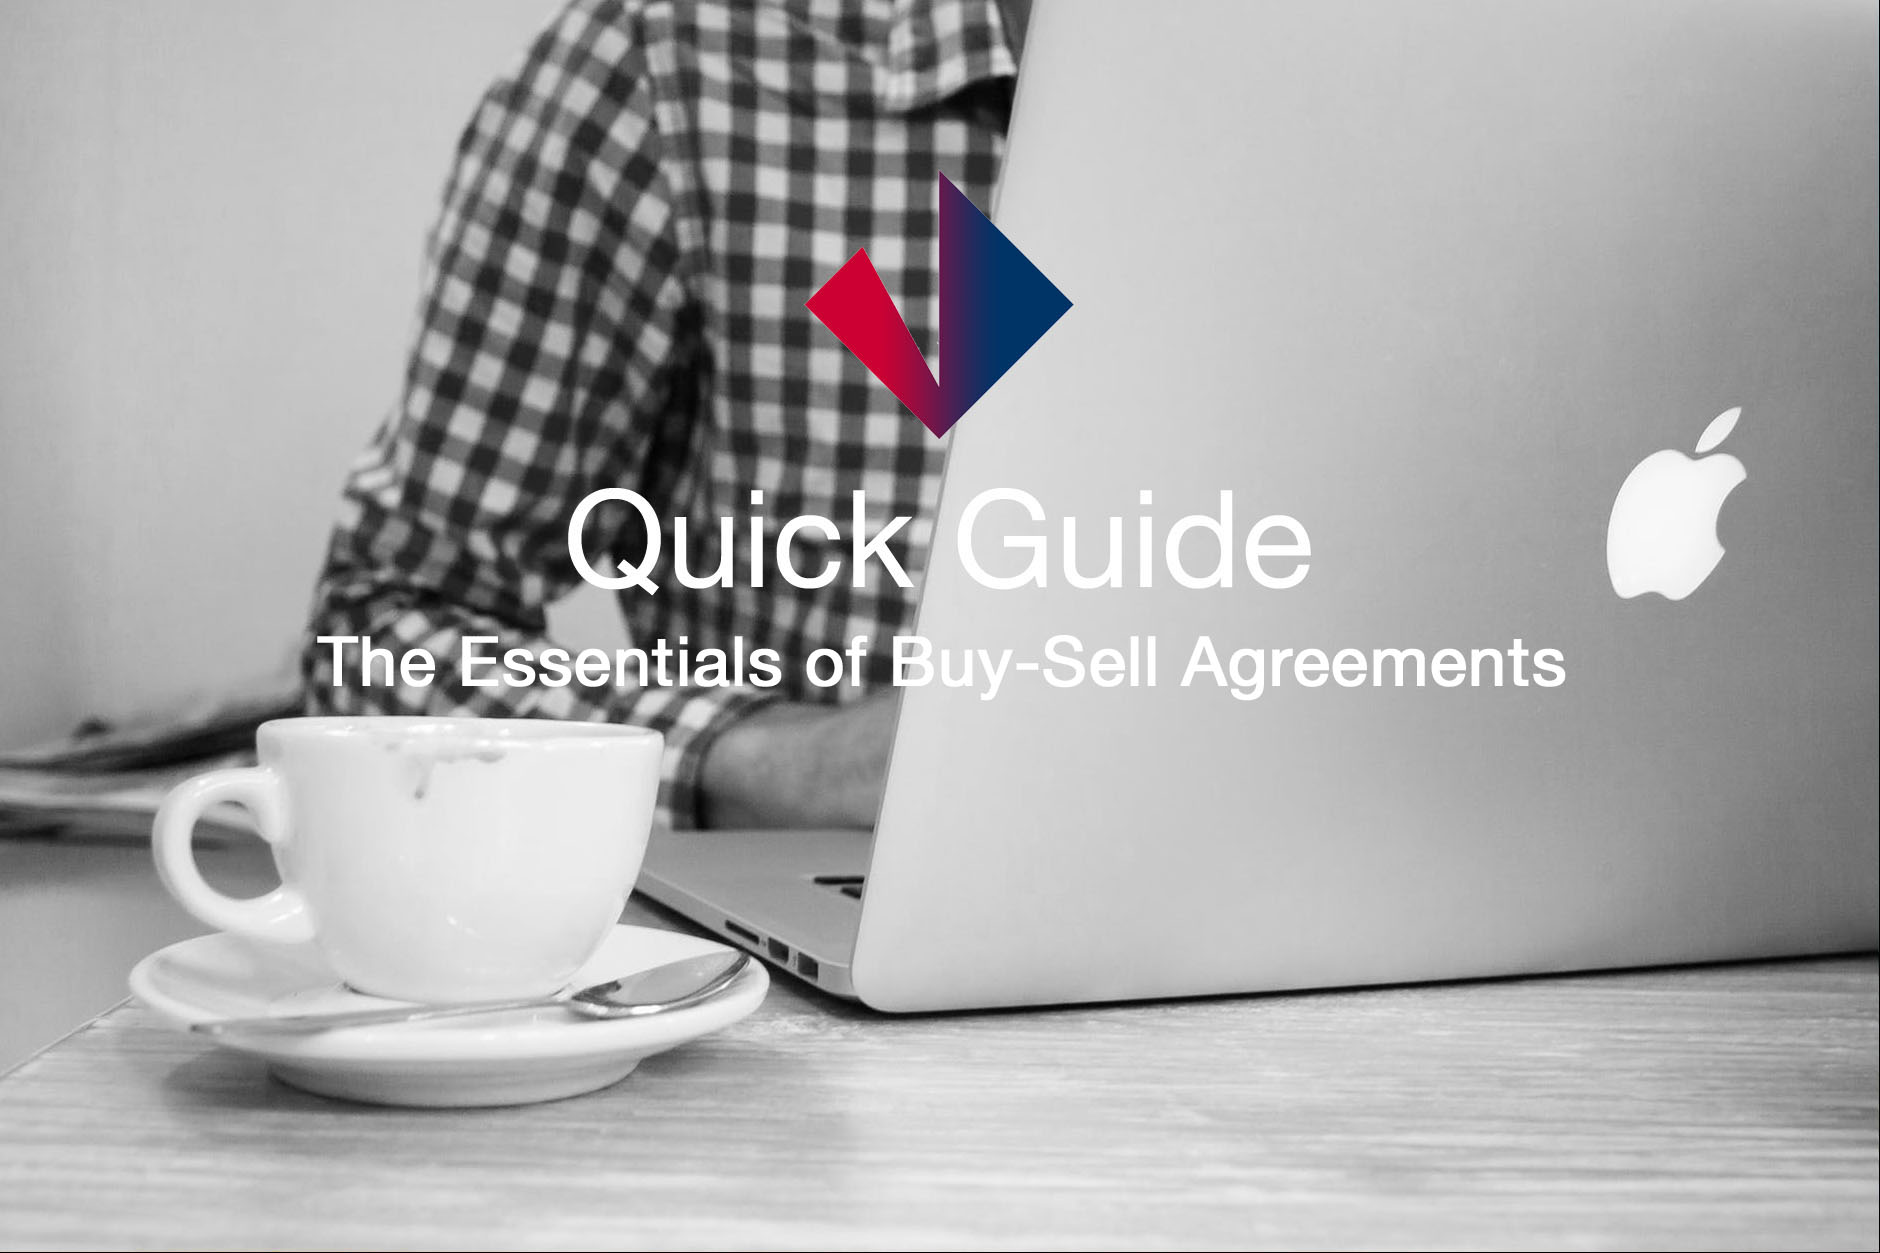 essentials of buy-sell agreements